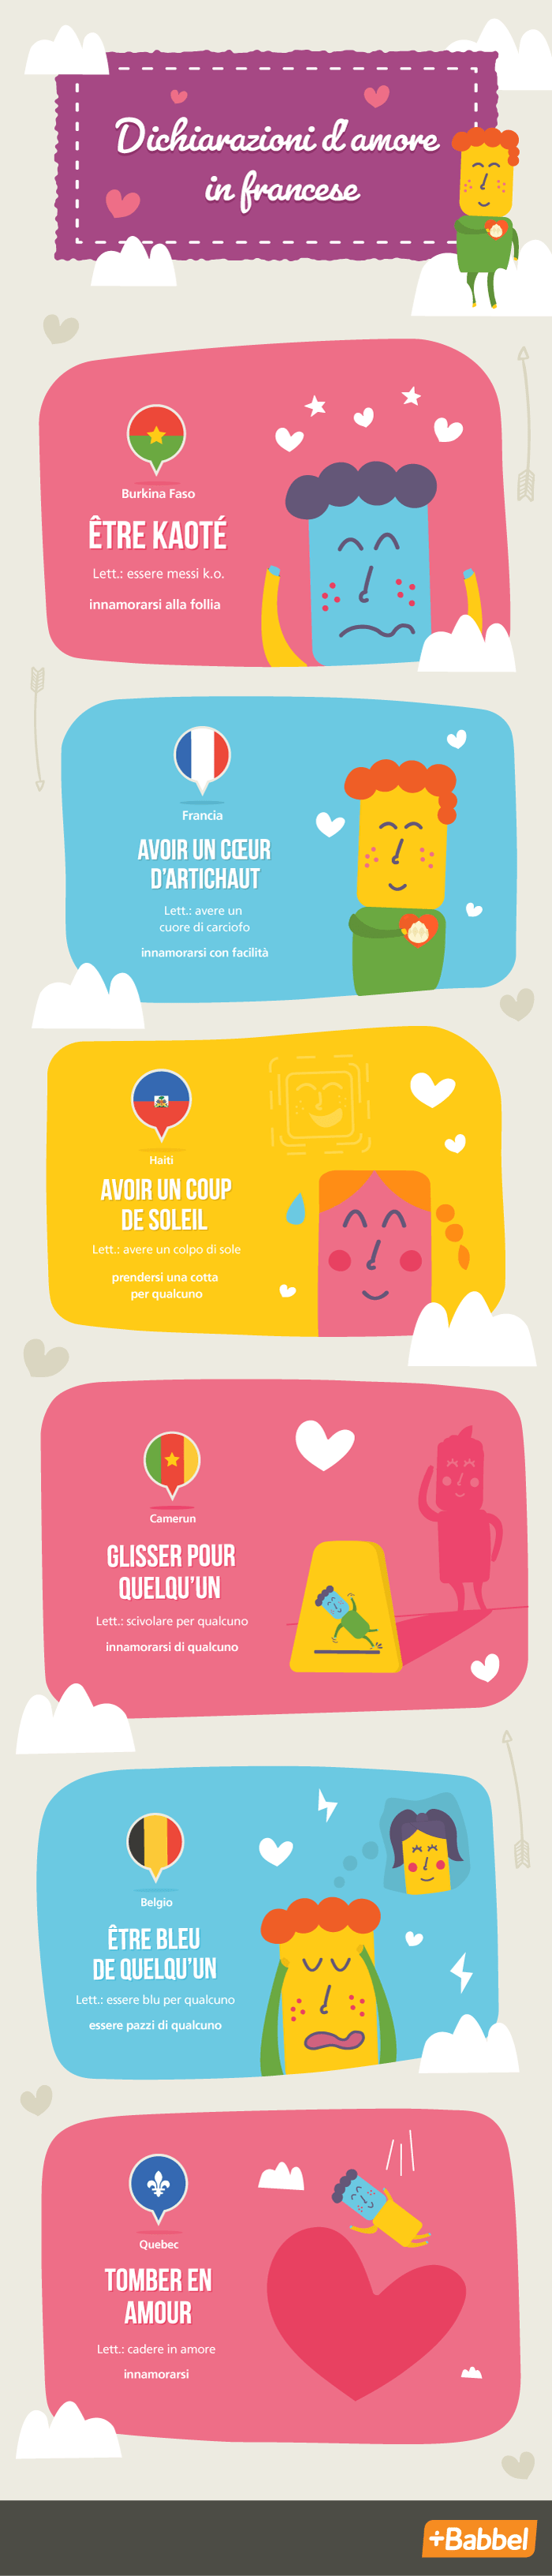 Parlare d'amore in francese